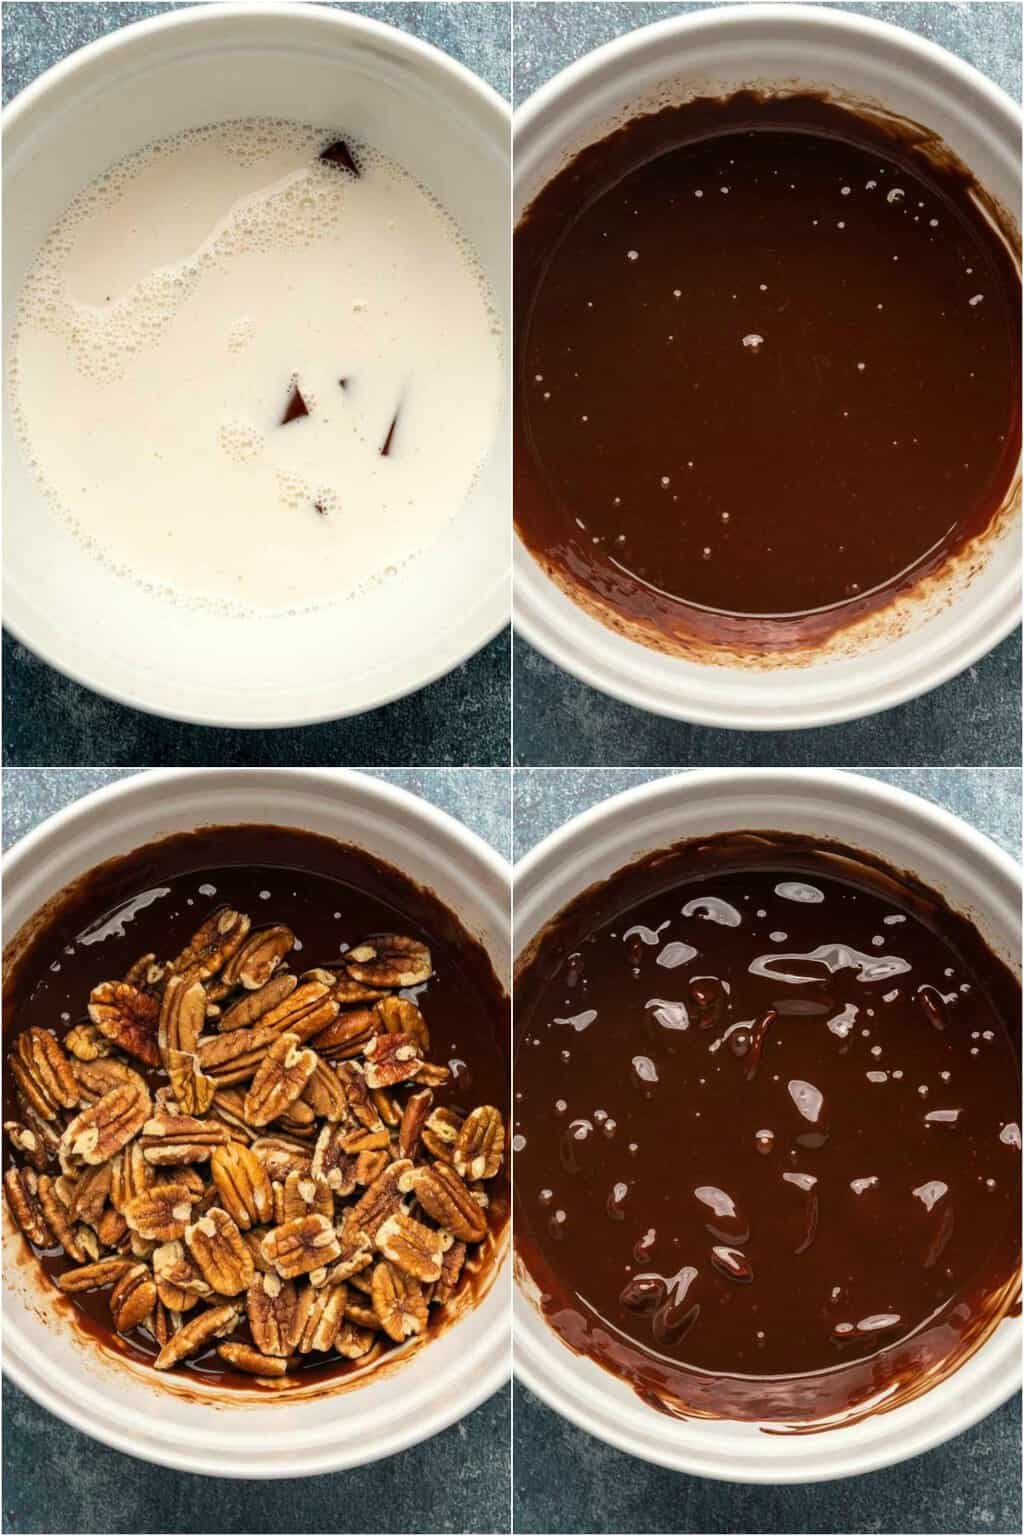 Step by step process photos to making a chocolate ganache filling for a vegan chocolate tart.